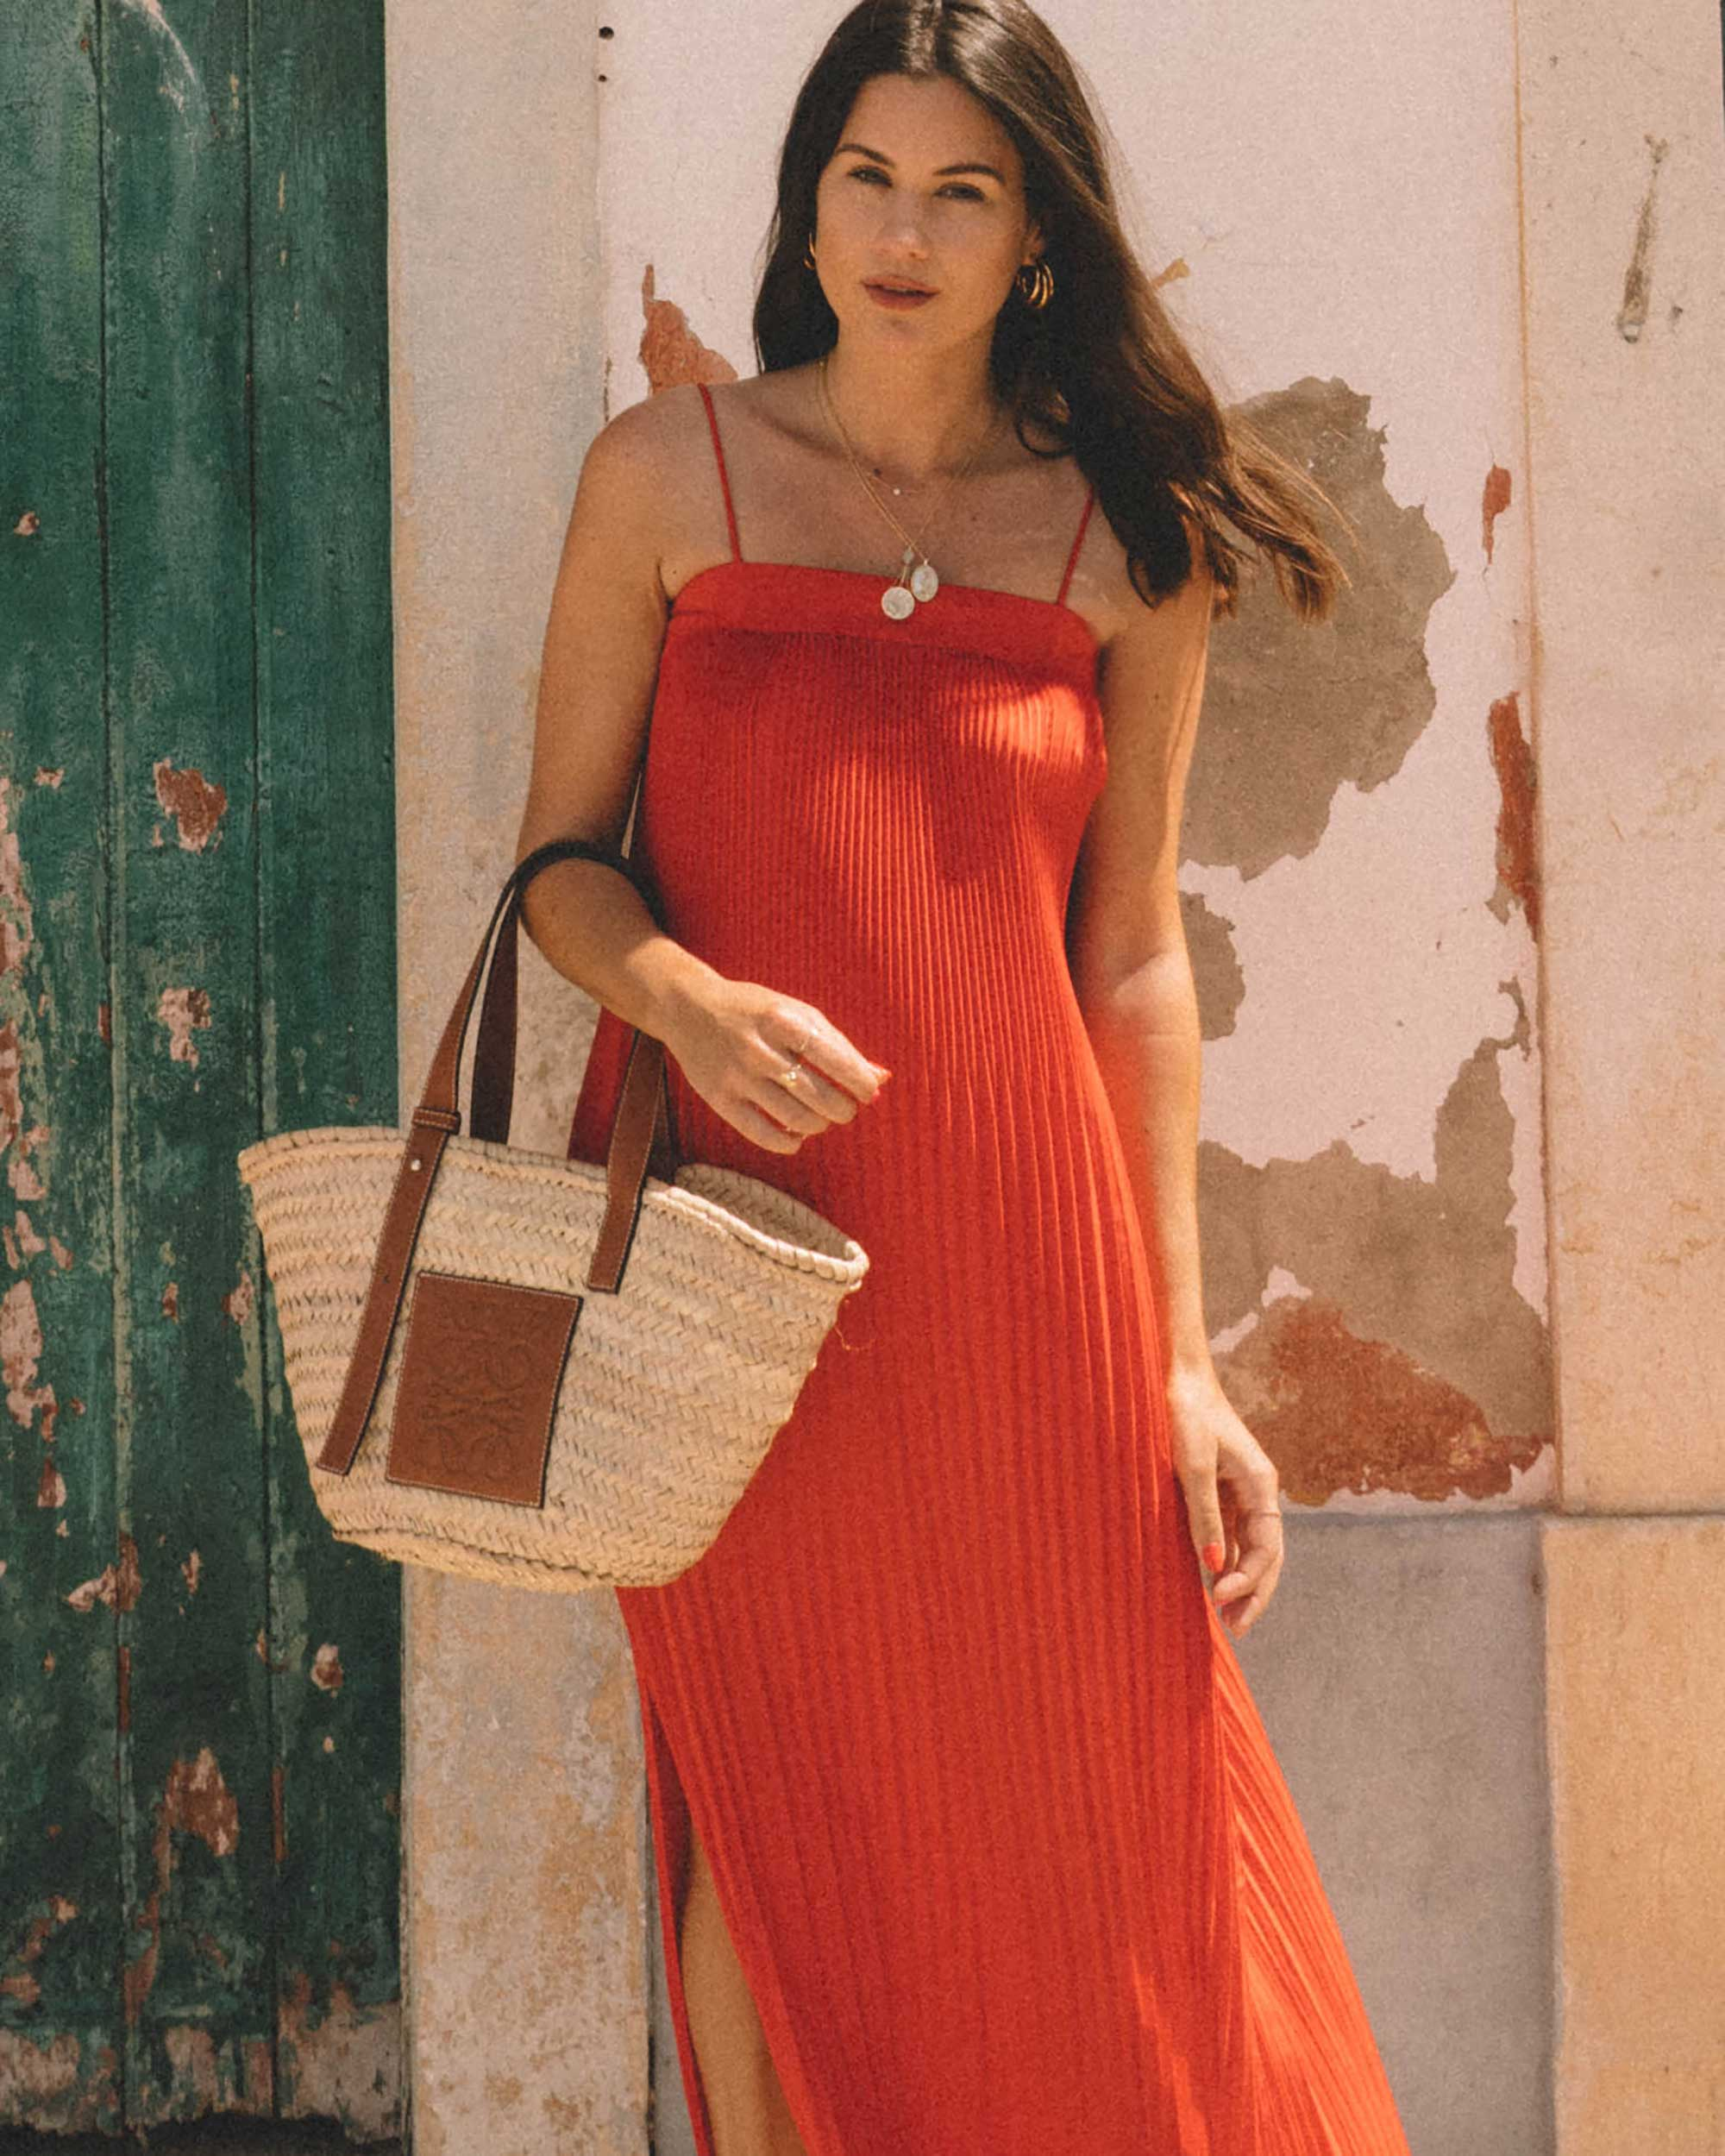 Sarah Butler of Sarah Styles Seattle wears And Other Stories red pleated midi dress with a square cut, spaghetti straps and plisse detailing in Lisbon, Portugal | @sarahchristine -3.jpg